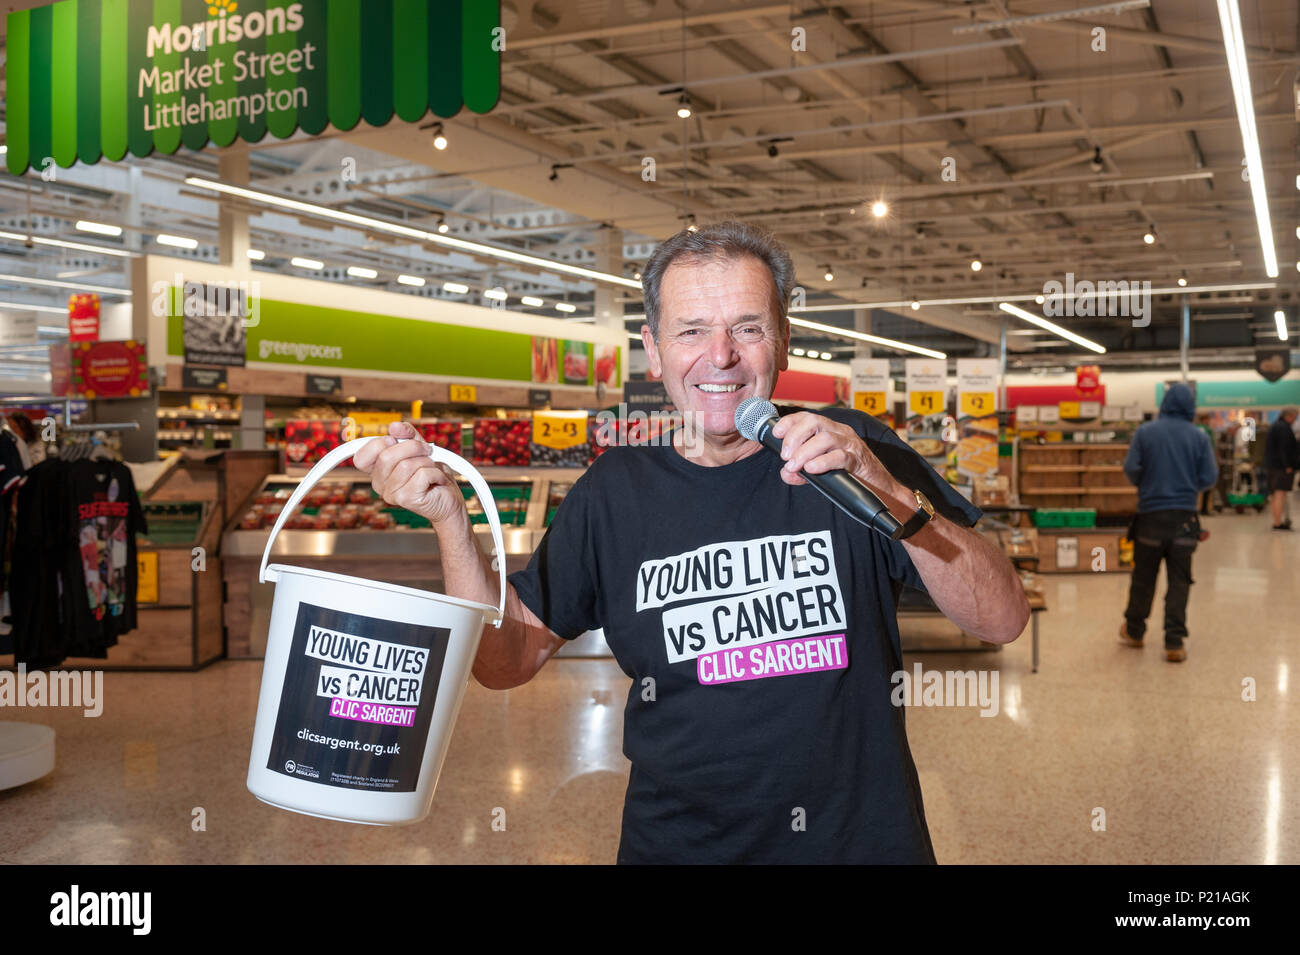 Charity supermarket singer Geoff Davis, from Falmouth, Cornwall, plans to sing in every Morrisons store in the UK. Geoff who's raising money for the CLIC Sargent charity continued his supermarket tour by visiting the Morrisons store in Wick, Littlehampton, West Sussex, England. Geoff wants to help raise money for the charity after losing his son to cancer 43 years ago and has so far raised over £20,000 and visited 40 stores across the UK. Credit: Scott Ramsey/Alamy Live News - Stock Image